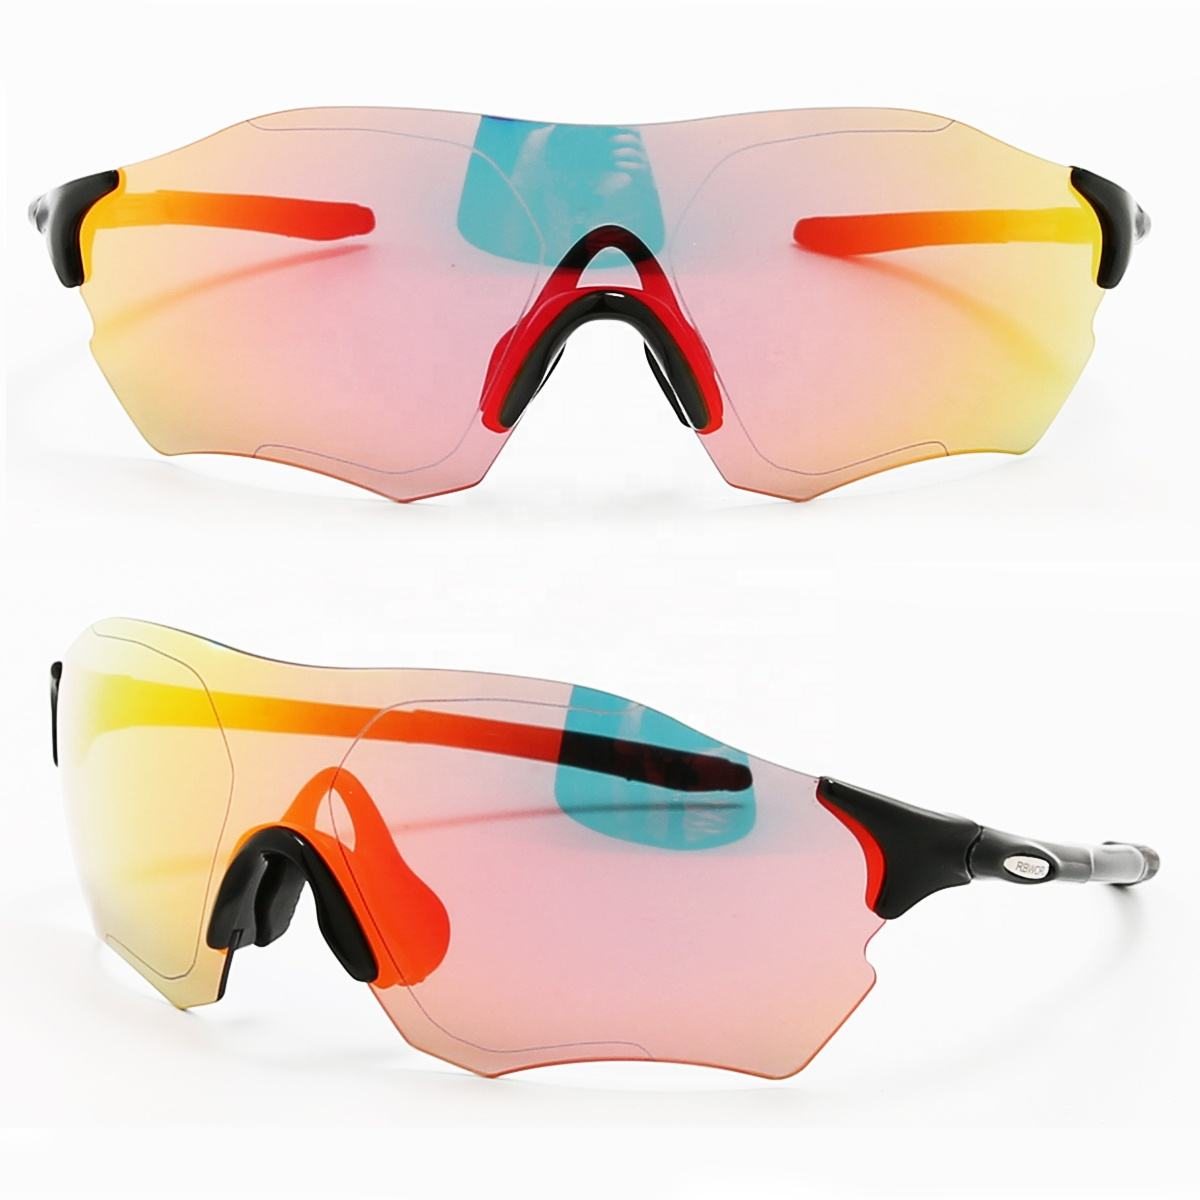 XIAMEND Sports Sunglasses Outdoor Men and Women Bicycle Riding Glasses Mountain Bike Glasses Color : E